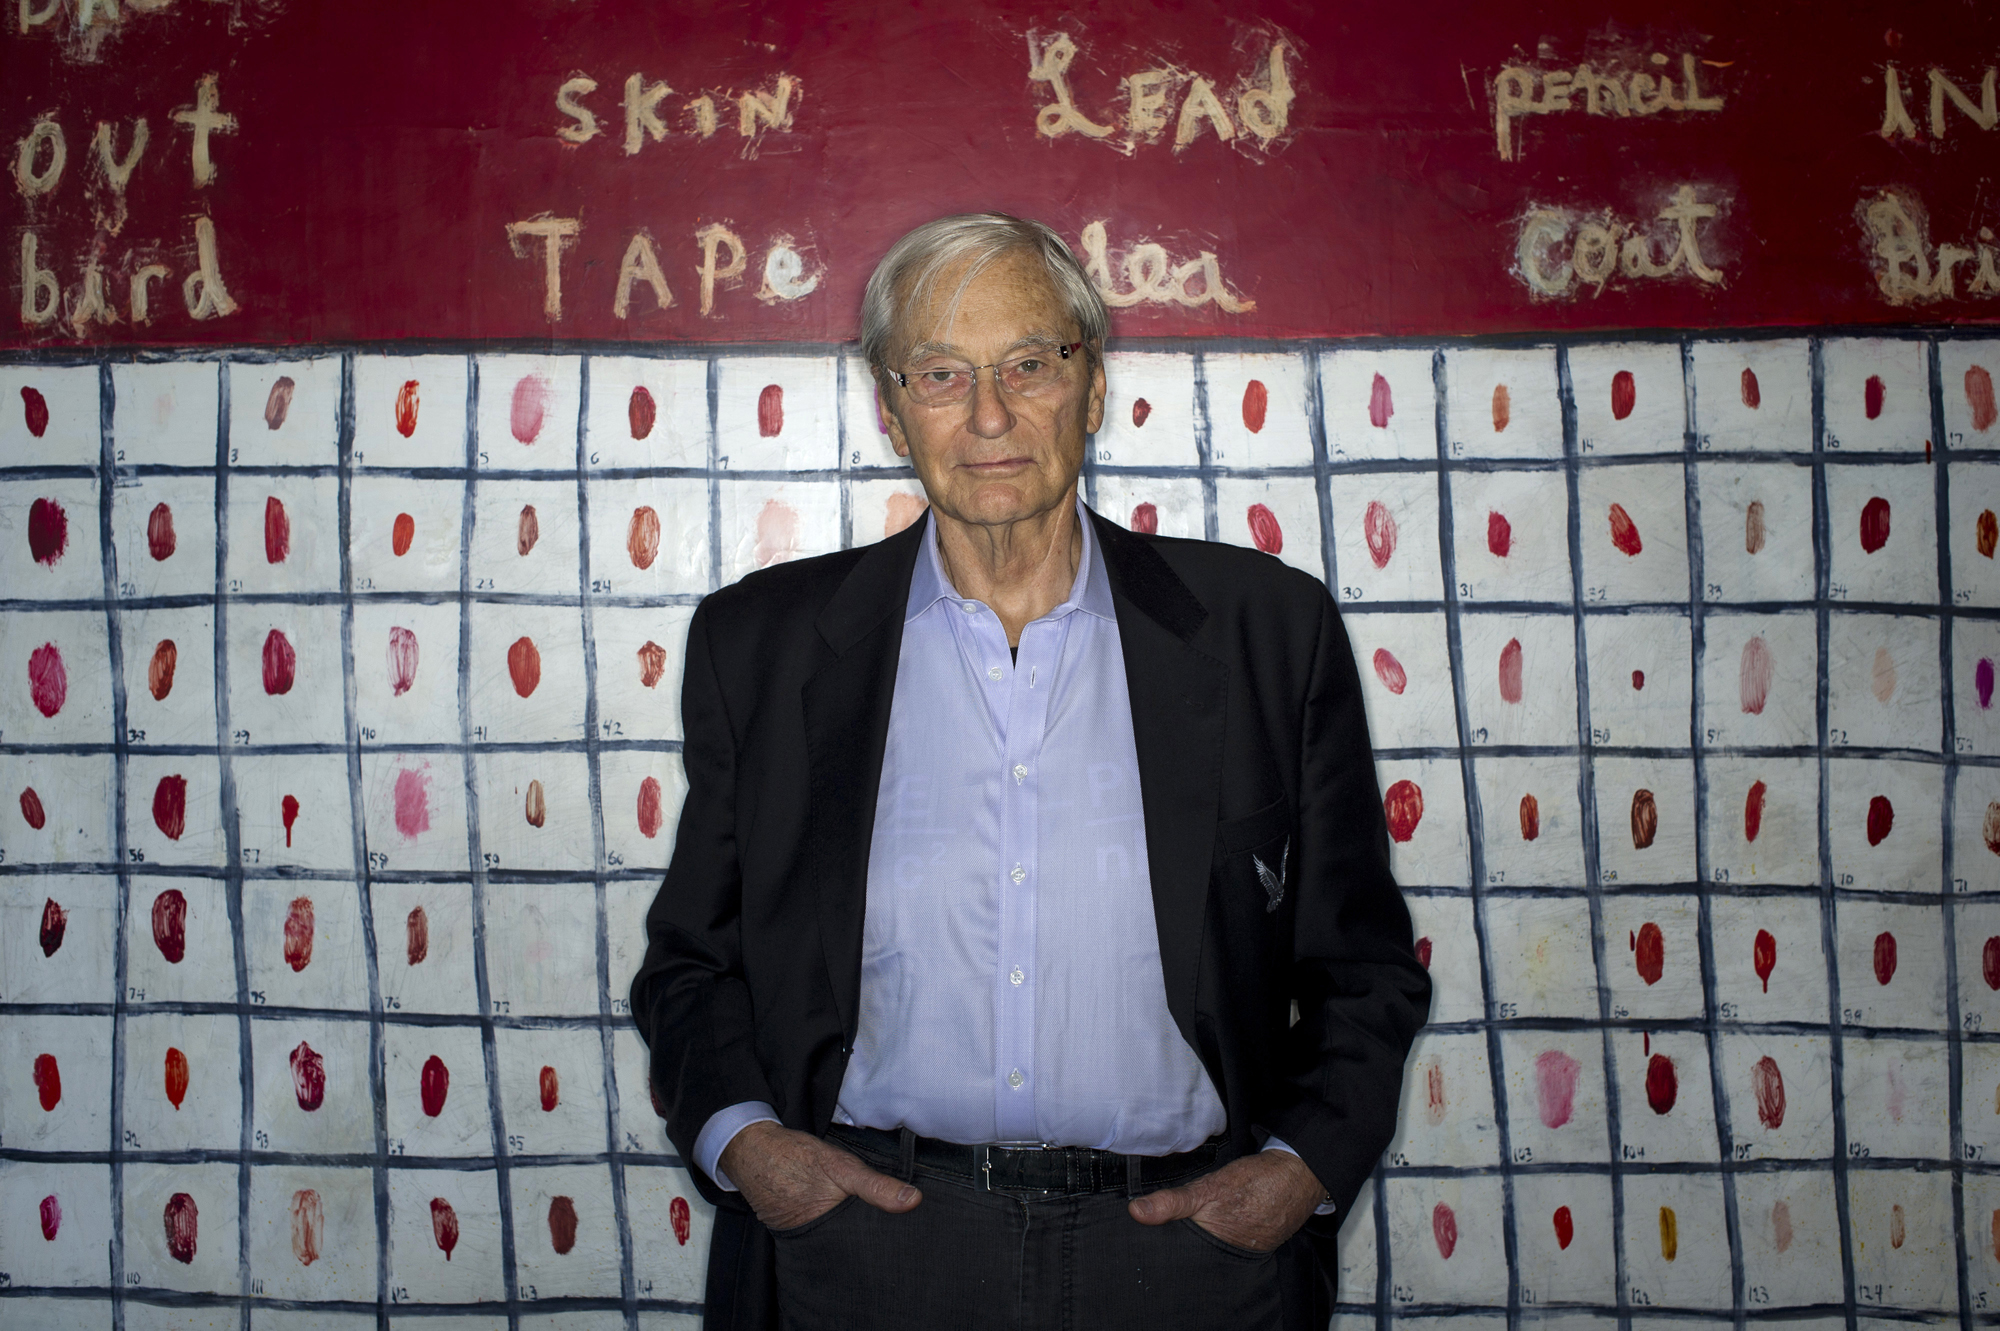 Tom Perkins, co-founder of Kleiner Perkins Caufield & Byers, stands for a photograph in his home in San Francisco, California, U.S. on January 31, 2014.